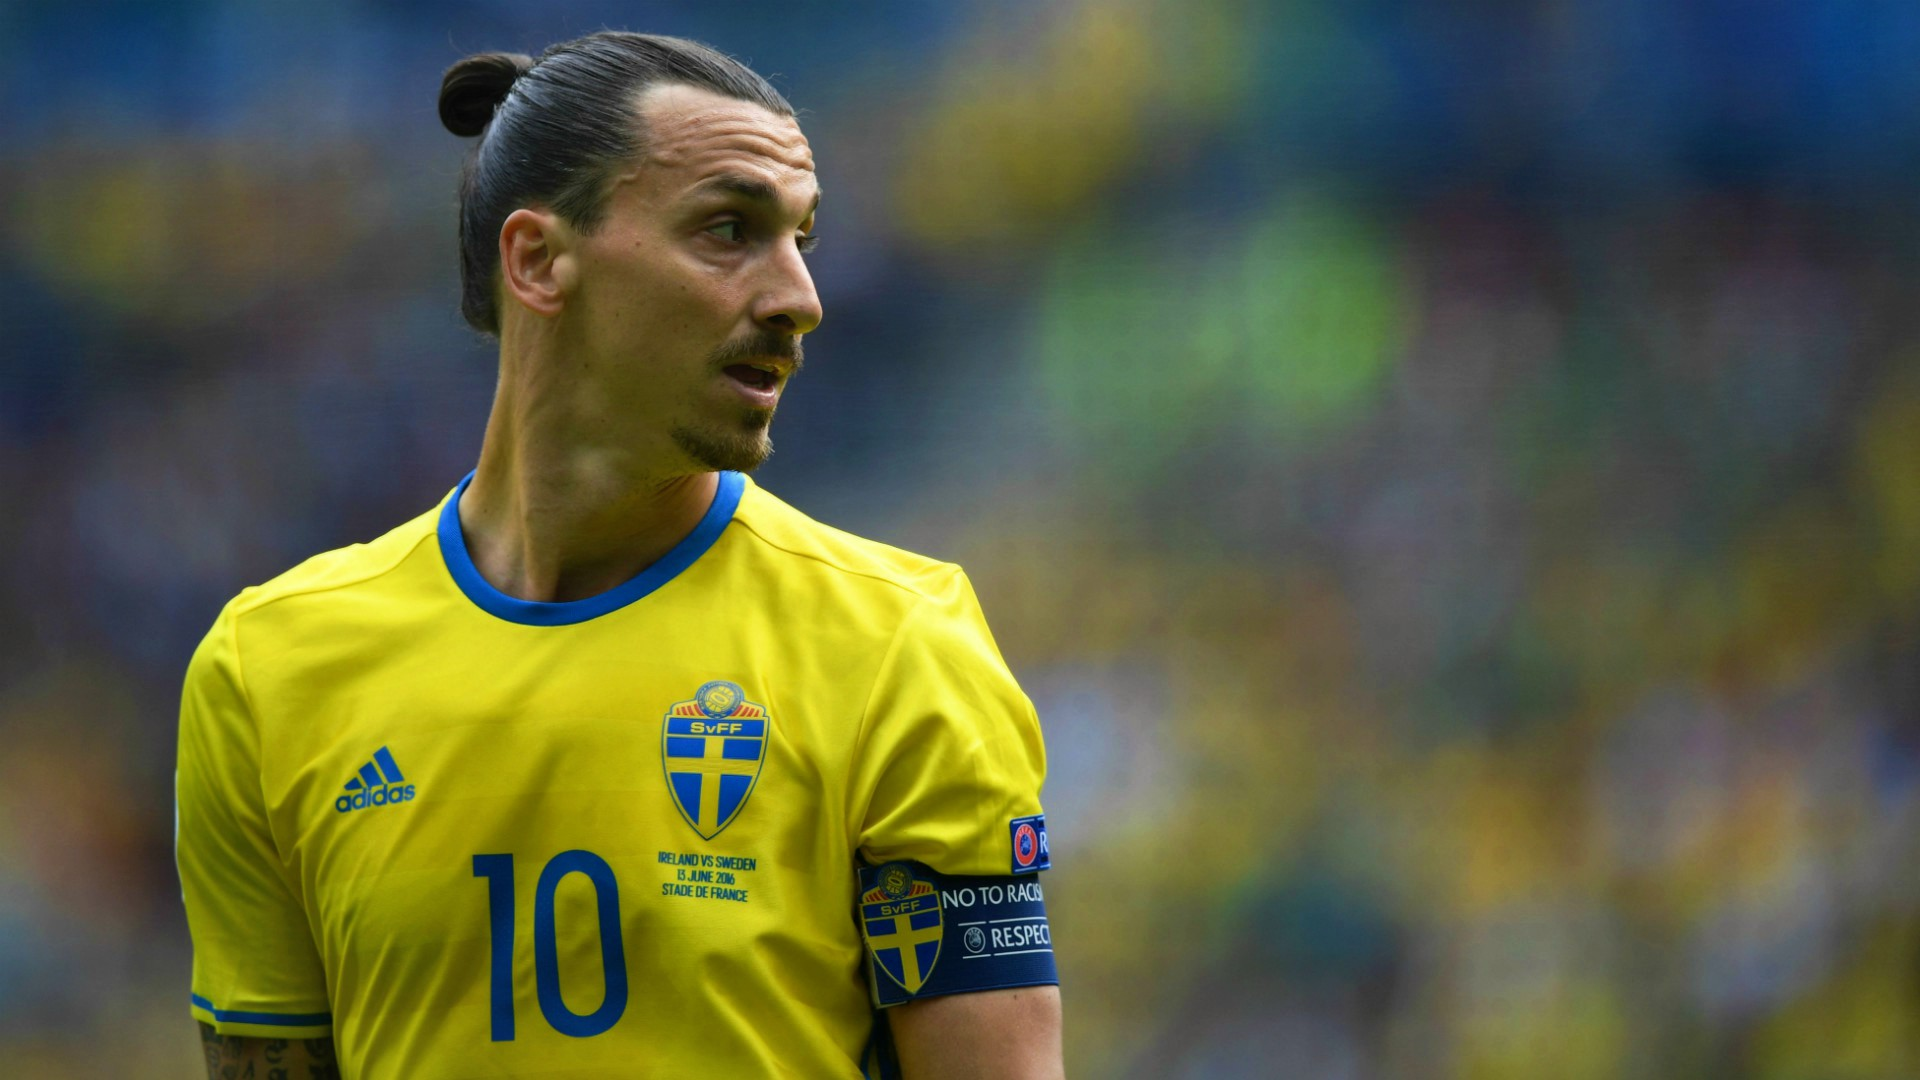 Zlatan Ibrahimovic Playing for Sweden in World Cup, Is it Possible?